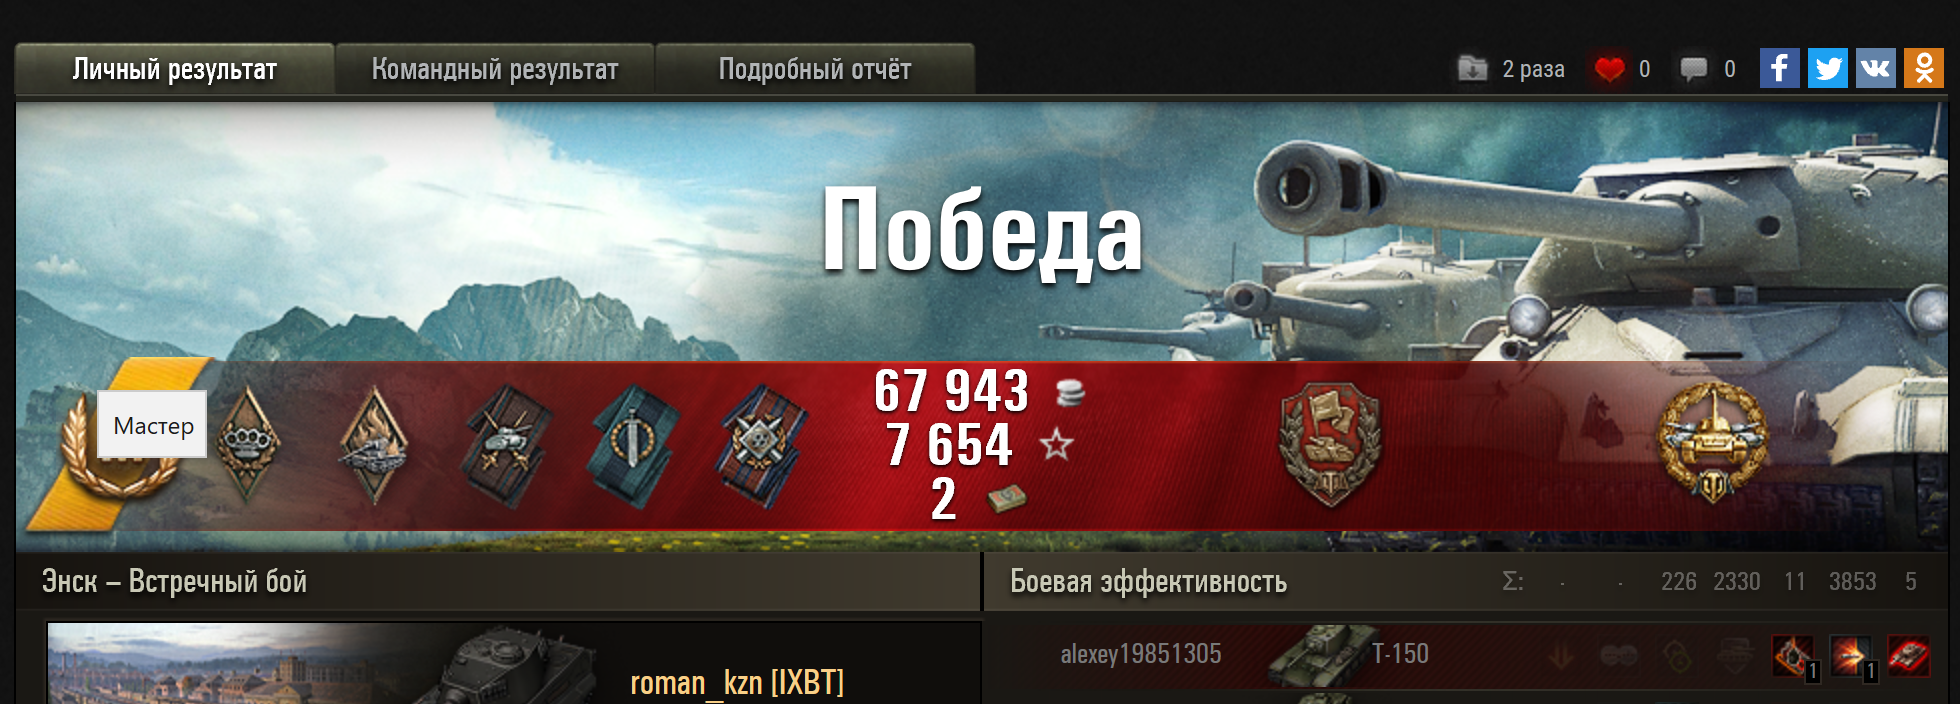 Адрес world of tanks 0